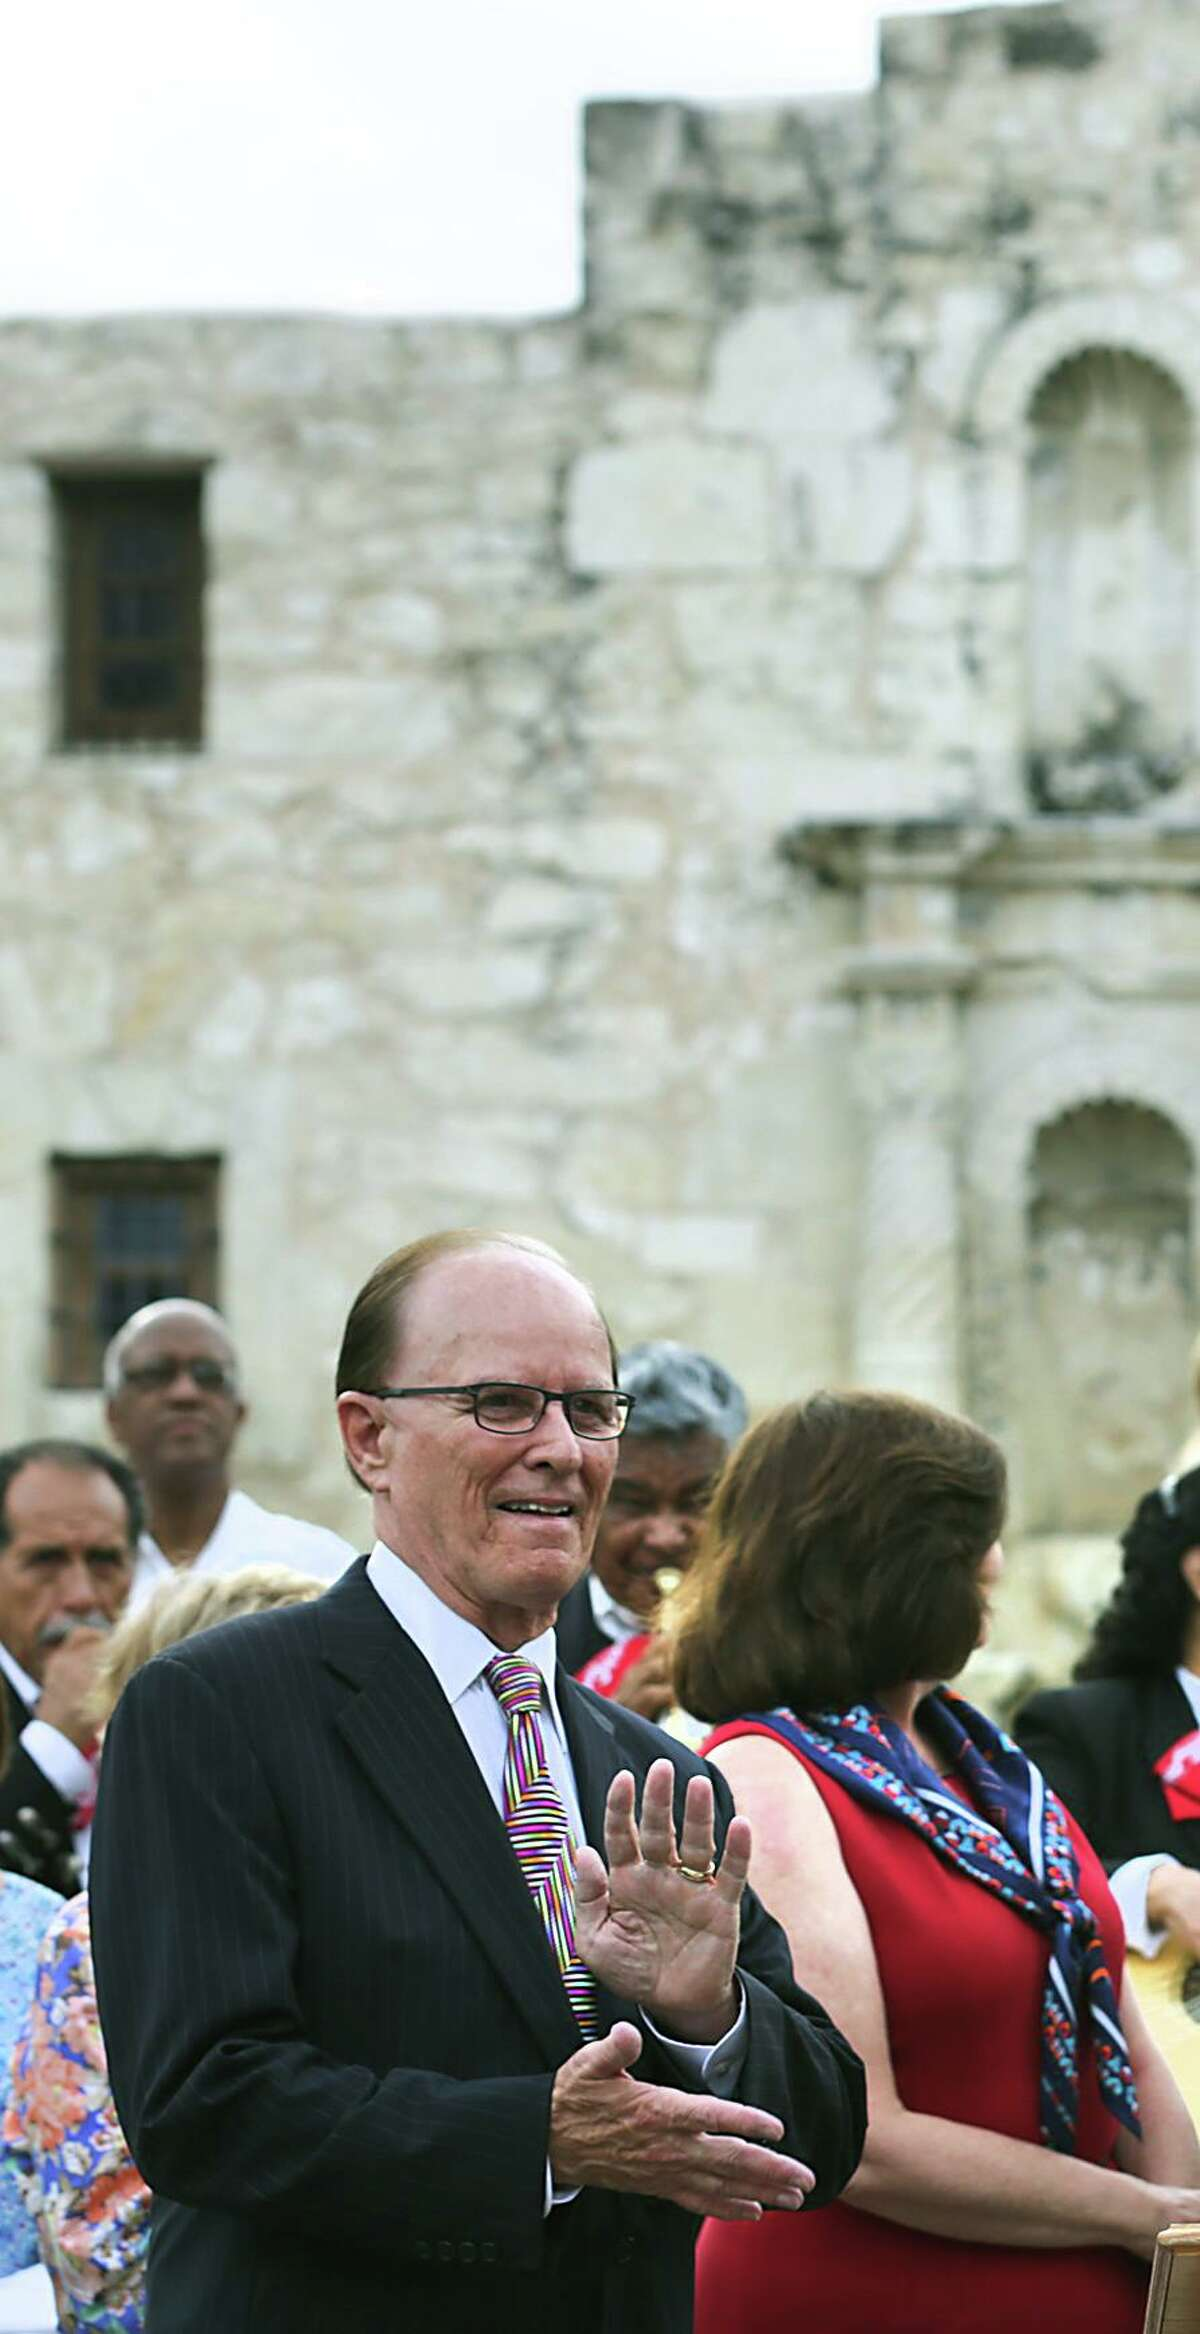 City leaders including Bexar County Nelson Wolff, left, and Mayor Ivy Taylor, center, celebrate the announcement of the San Antonio's Spanish missions winning World Heritage Site status on Tuesday, July 7, 2015 in front of The Alamo.